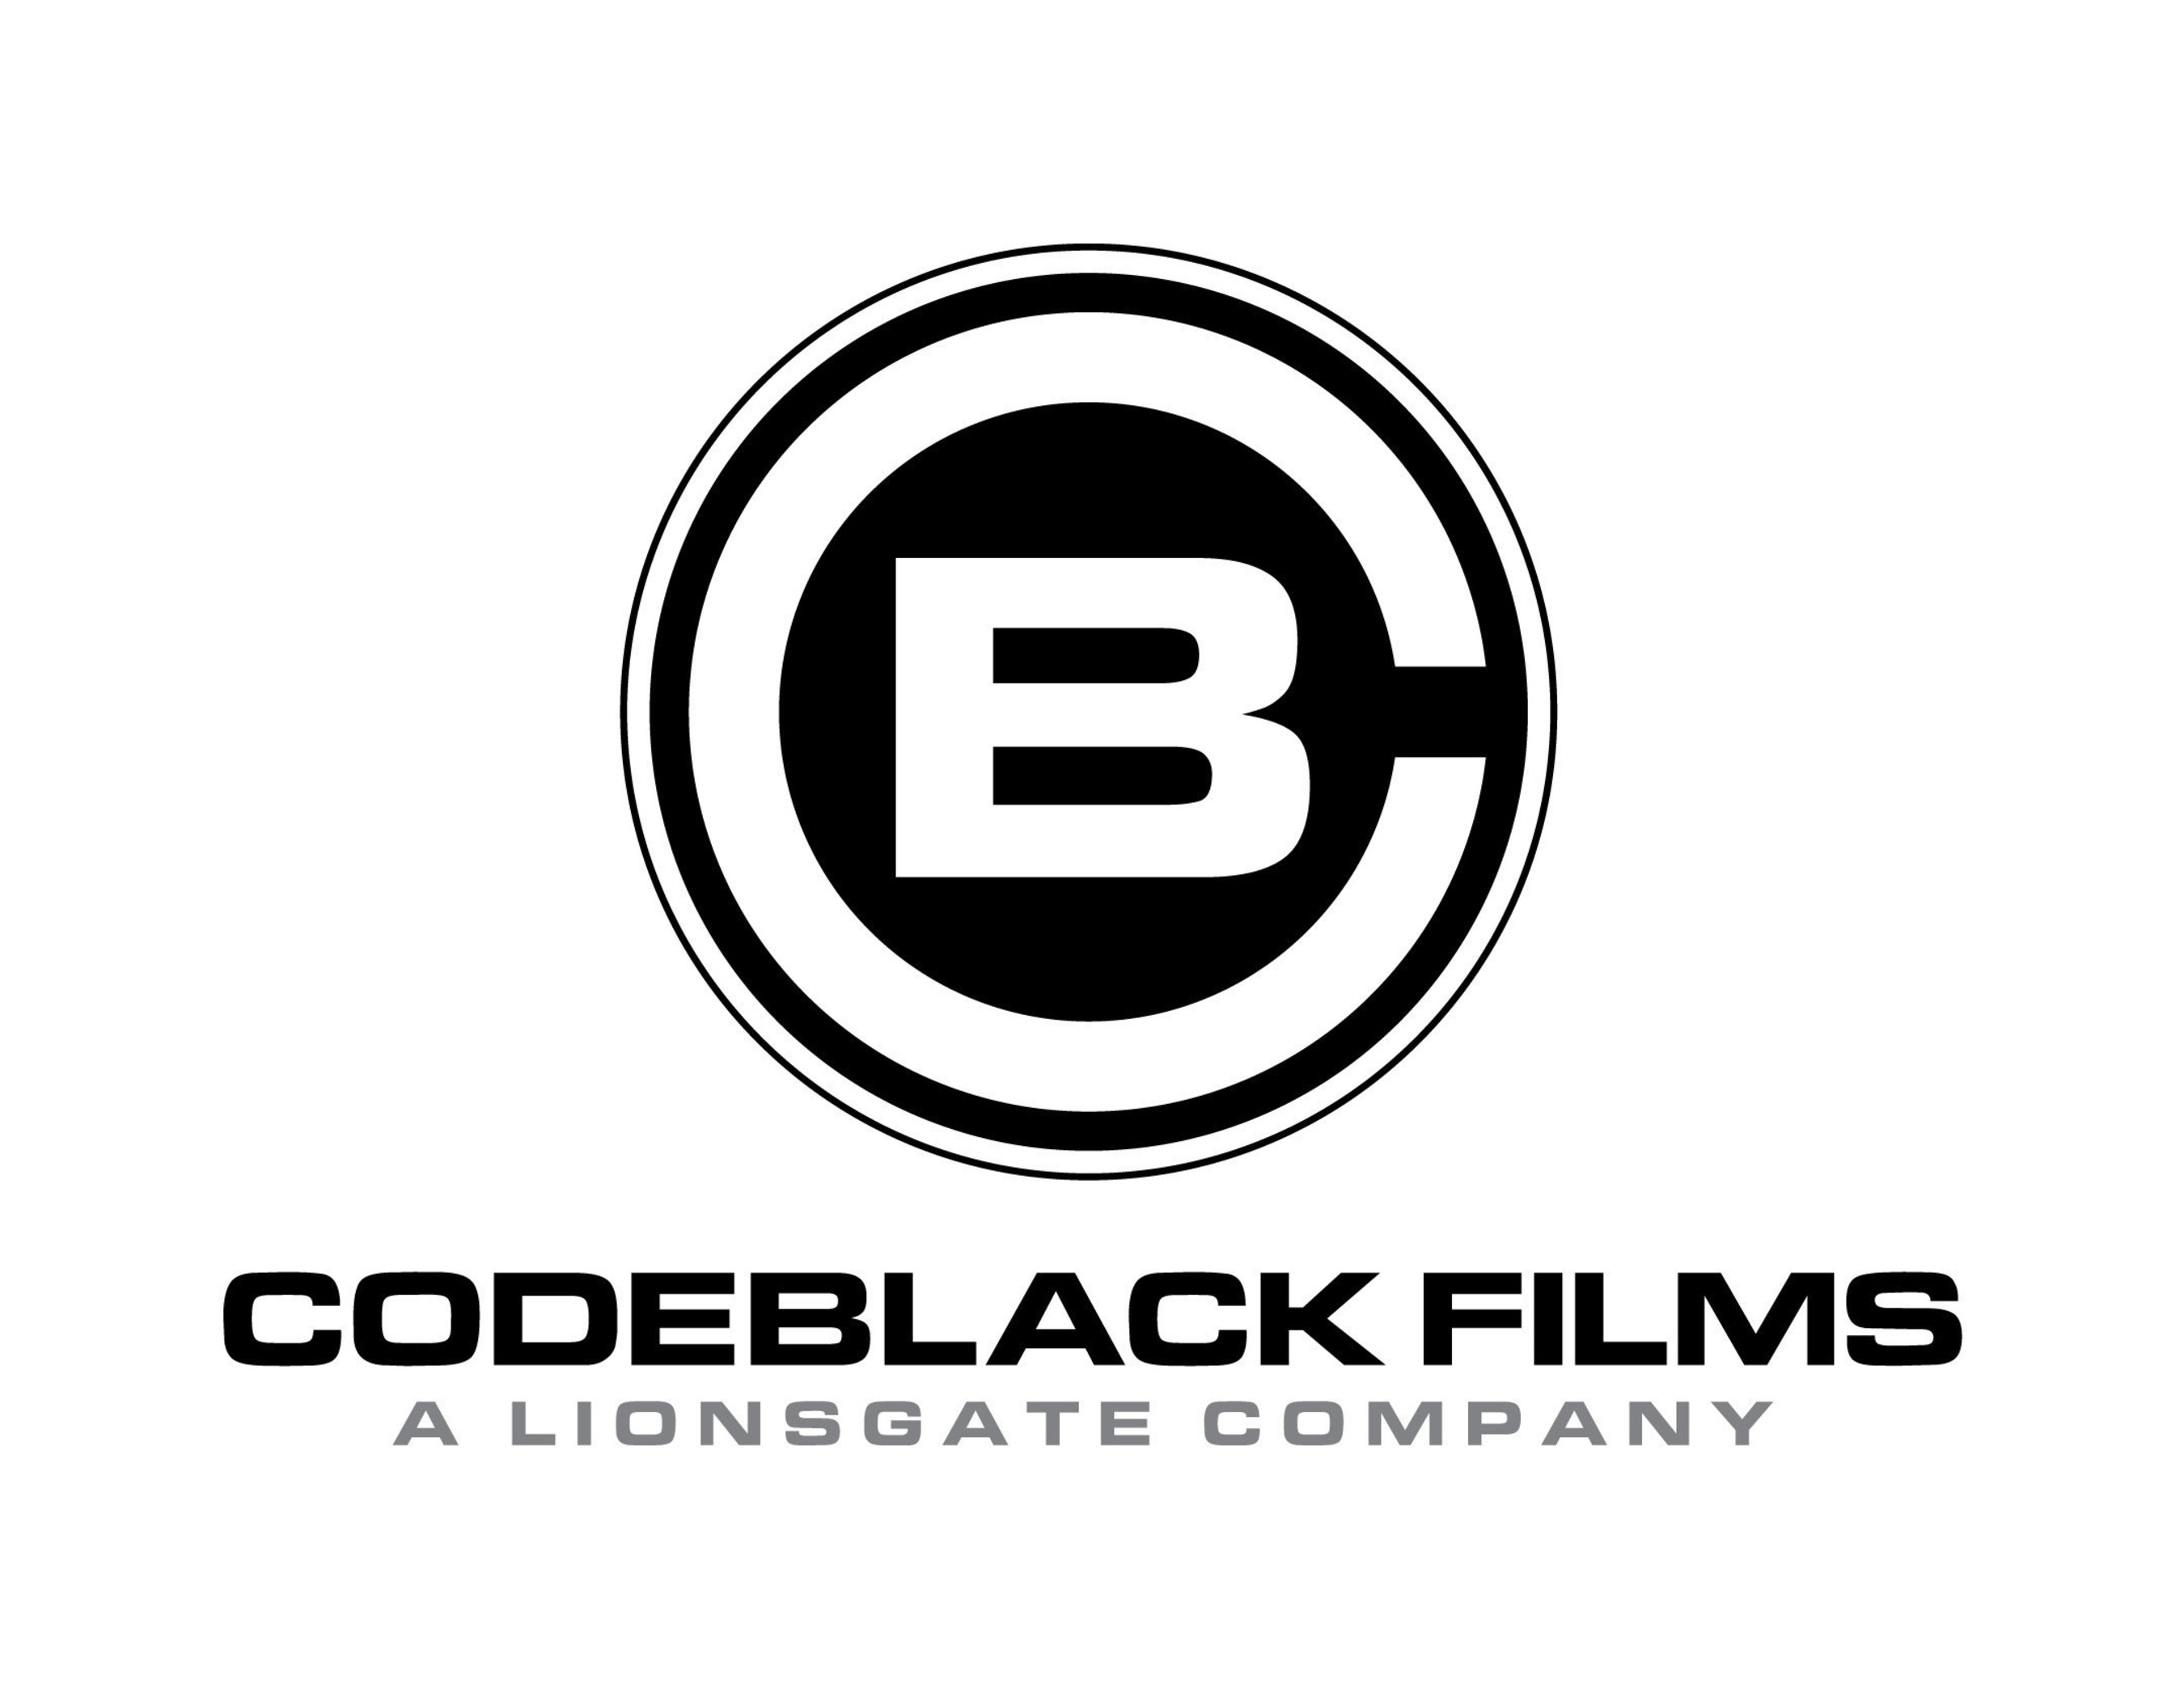 CODEBLACK FILMS, A LIONSGATE COMPANY, ESTABLISHES STUDENT SUPPORT FUND AND SCREENWRITING CONTEST AT THE UNIVERSITY OF SOUTHERN CALIFORNIA'S SCHOOL OF CINEMATIC ARTS